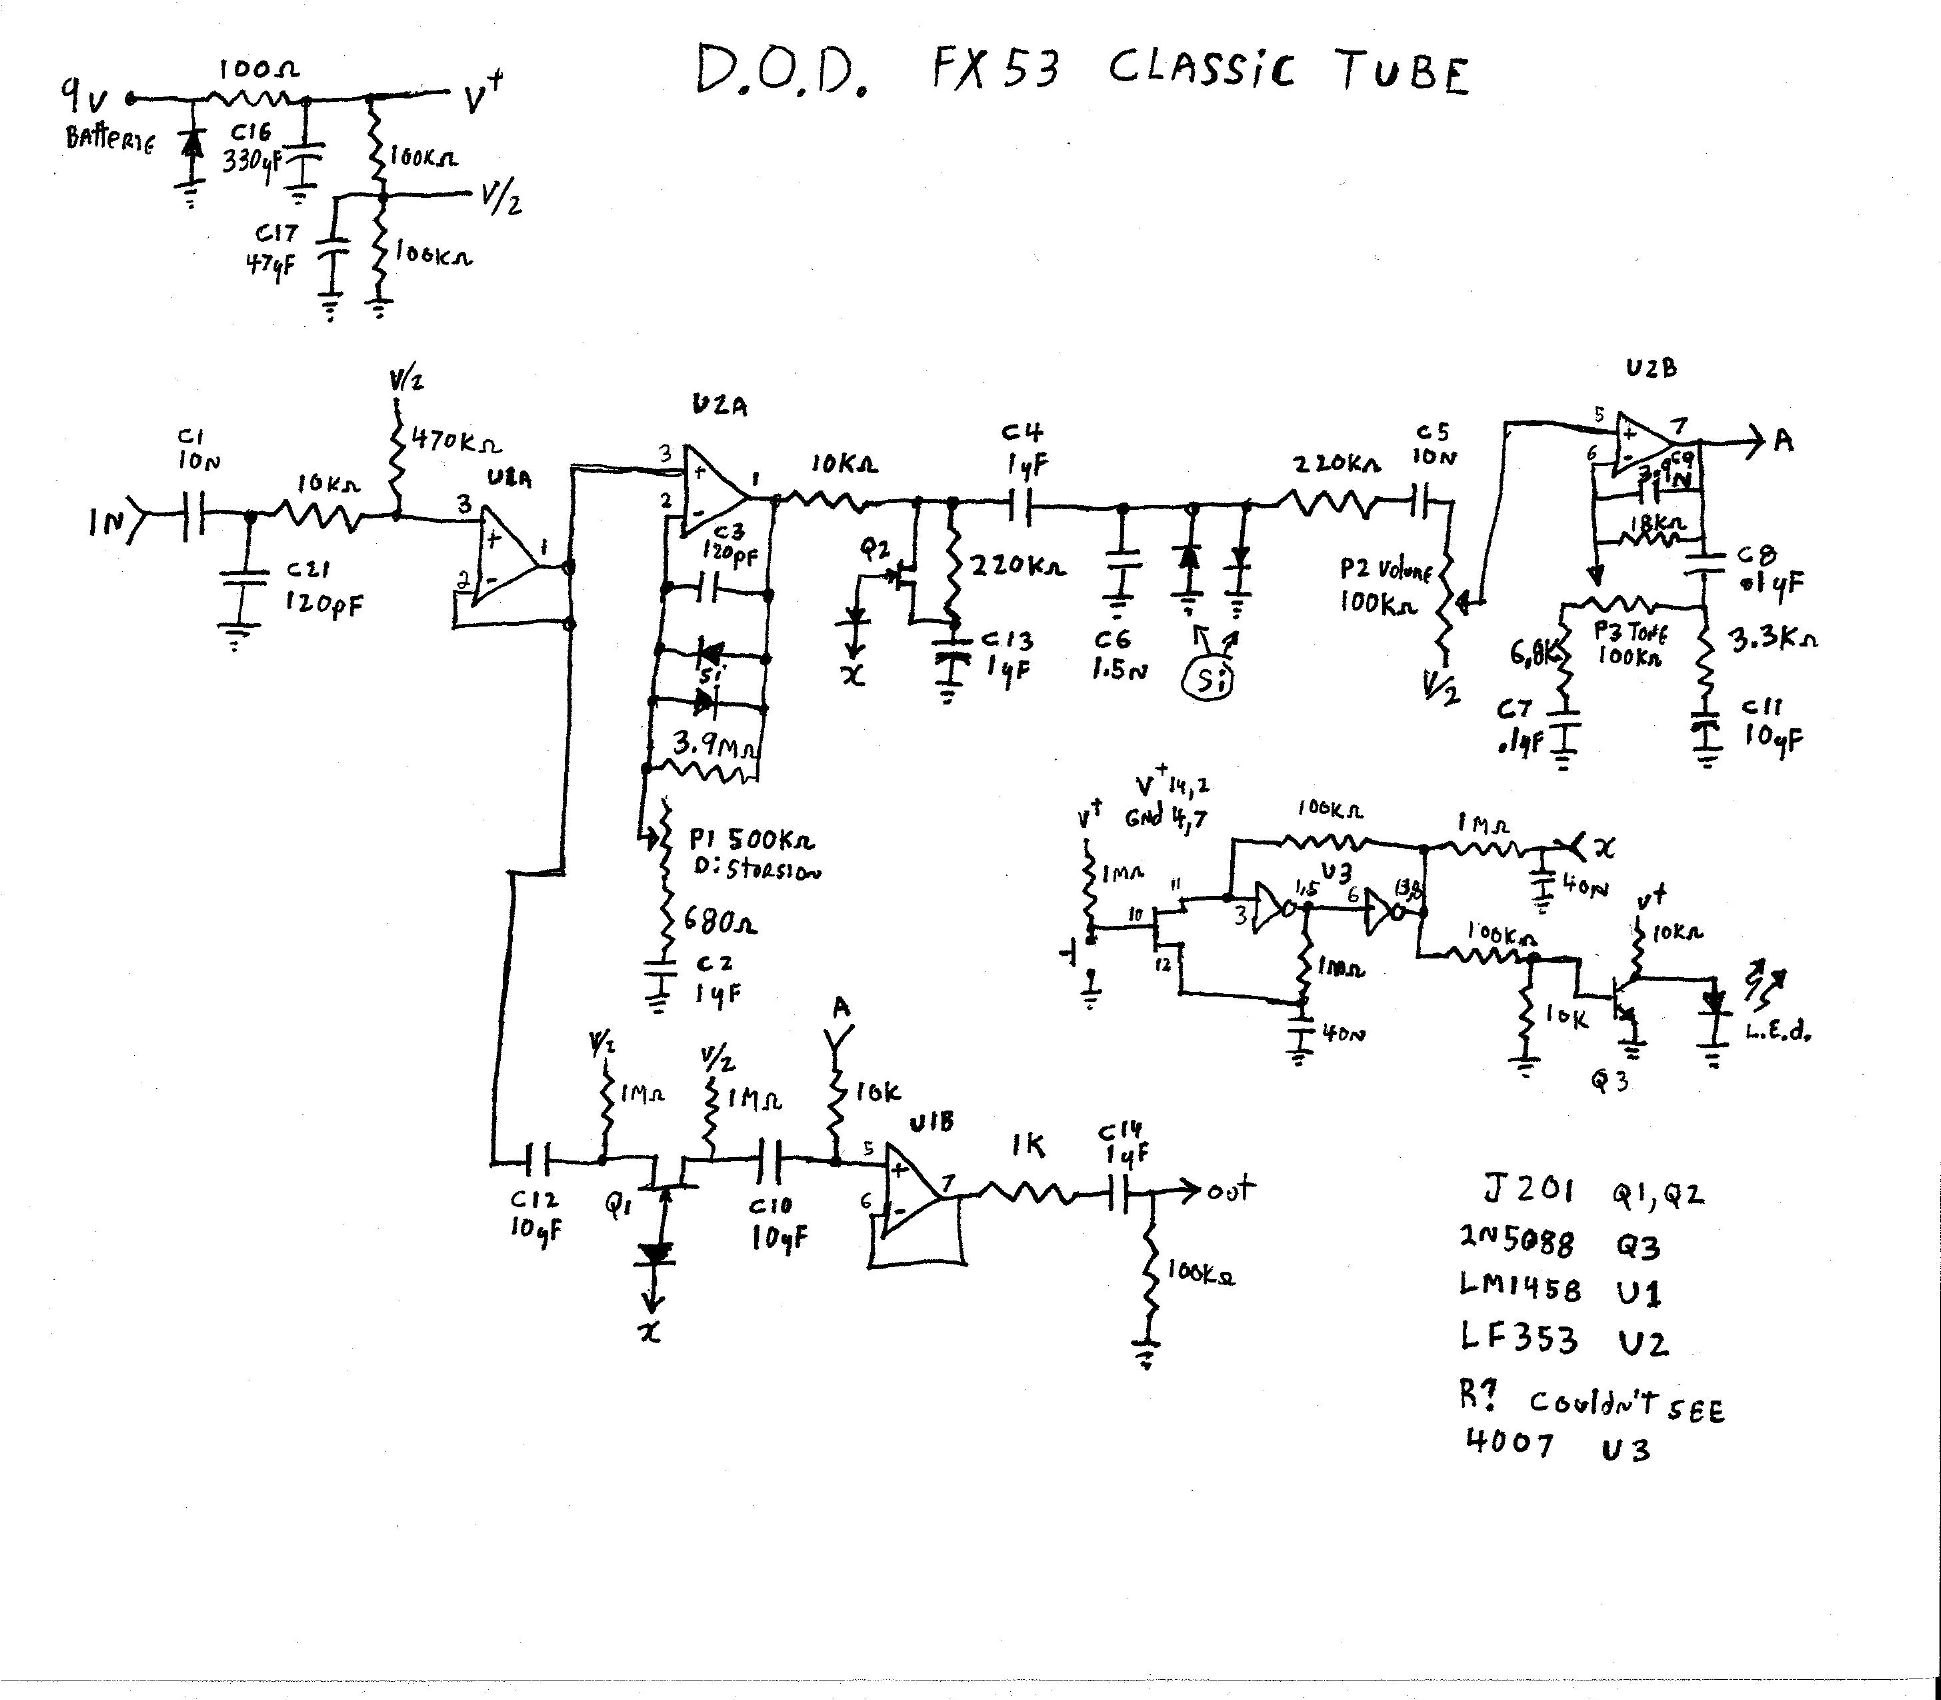 Free Download Atk Cap Pickup Wiring Diagram Home Diagrams Hard A Stove Schematic Library